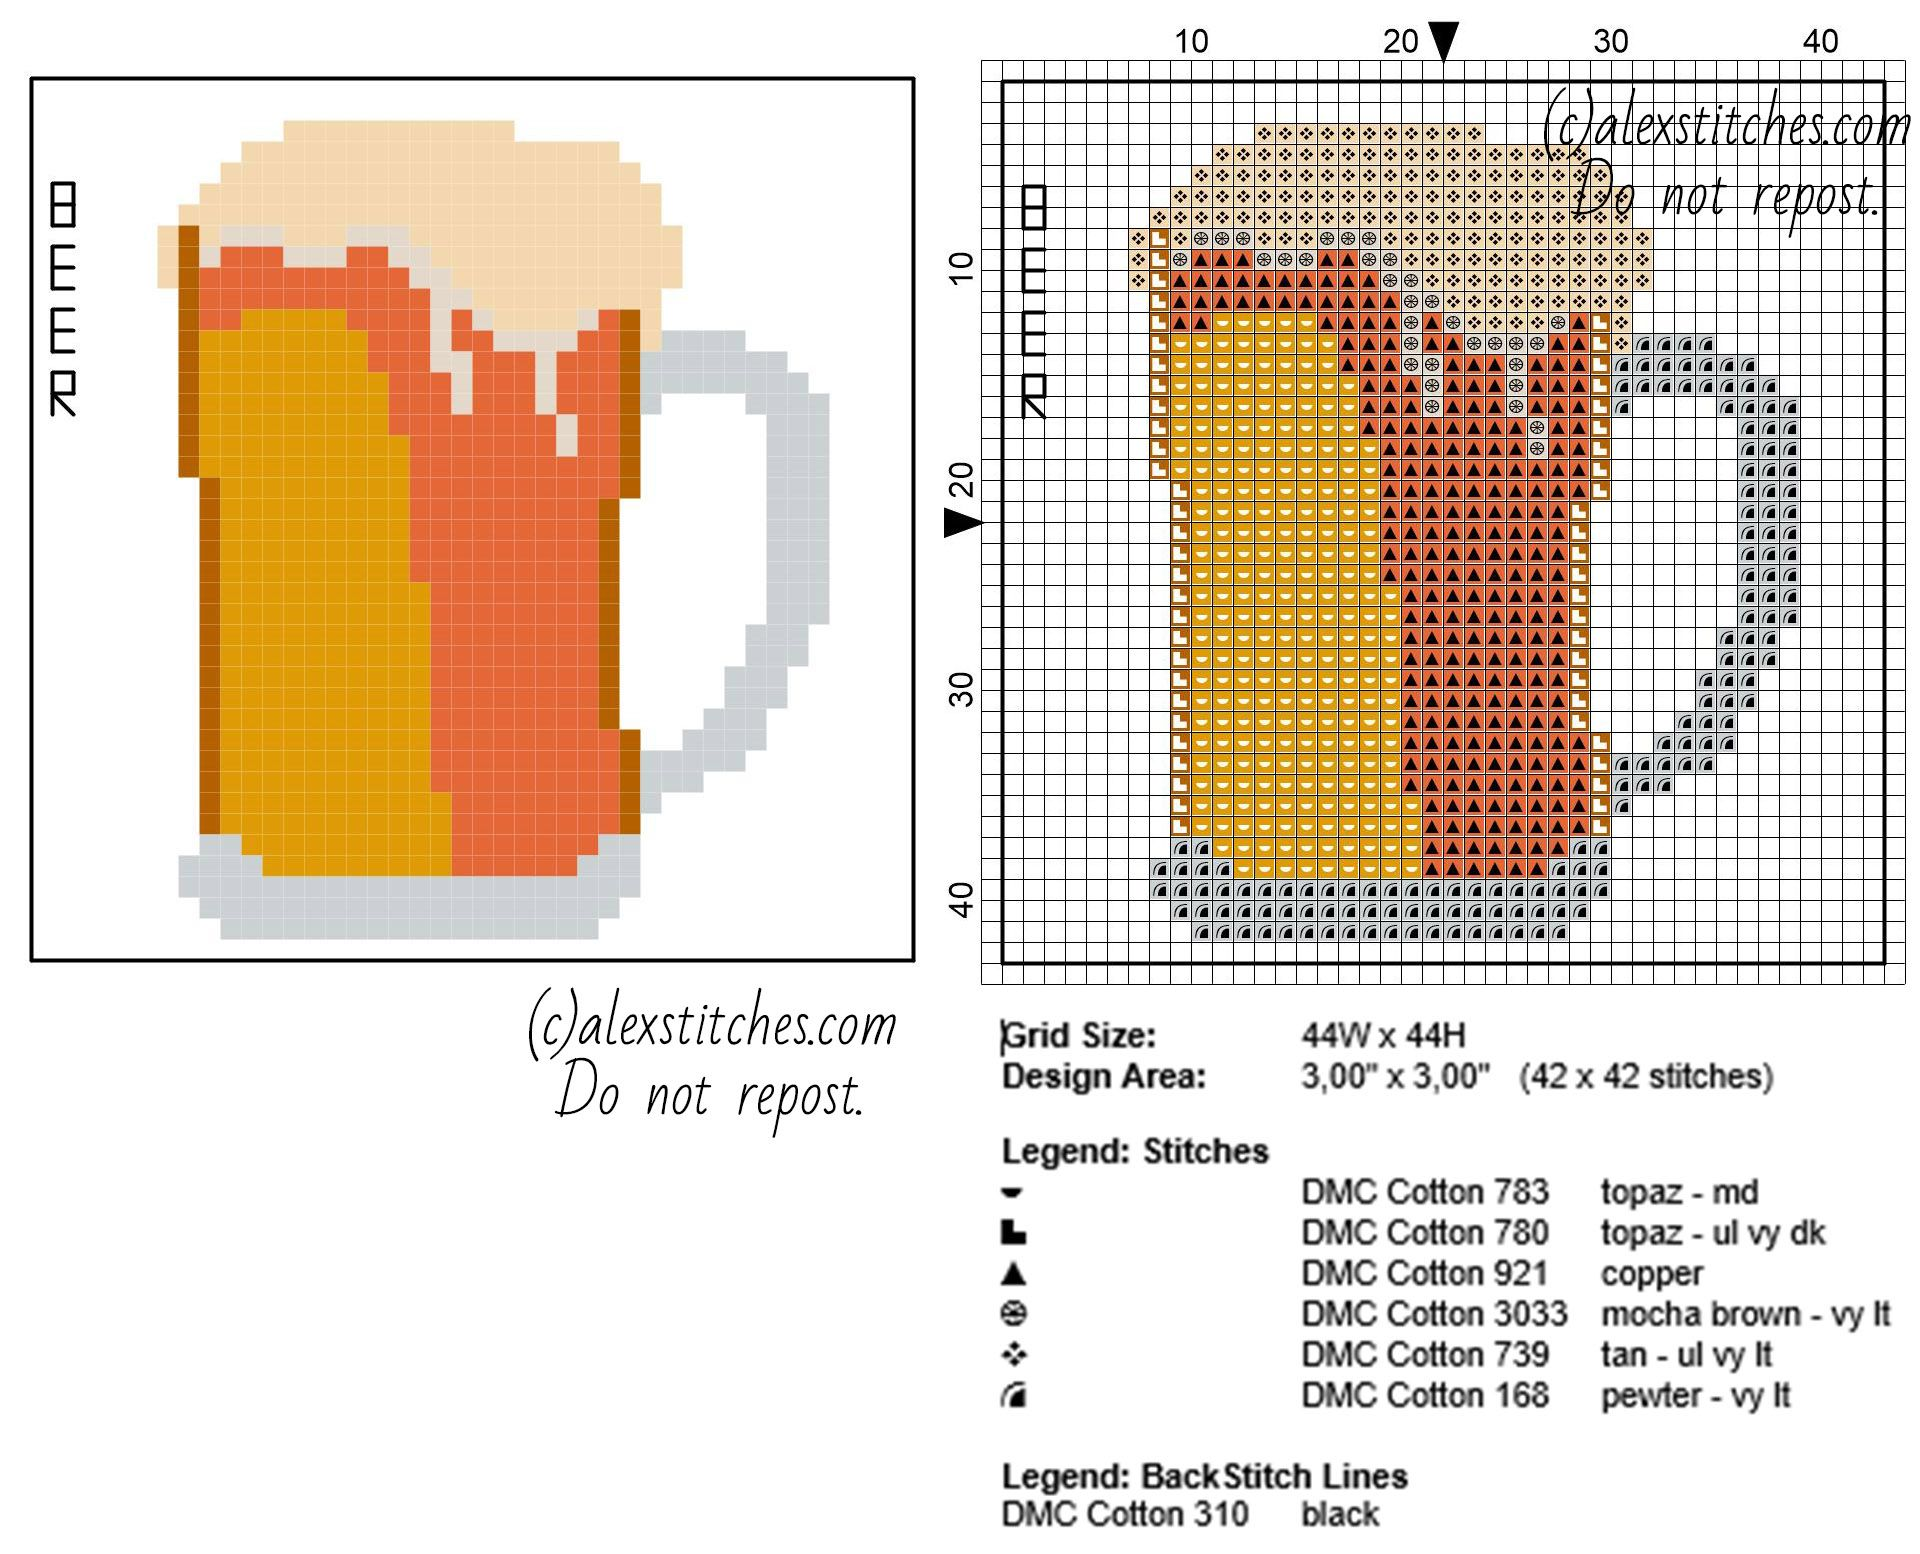 coaster idea beer glass free cross stitch pattern download 44 x 44